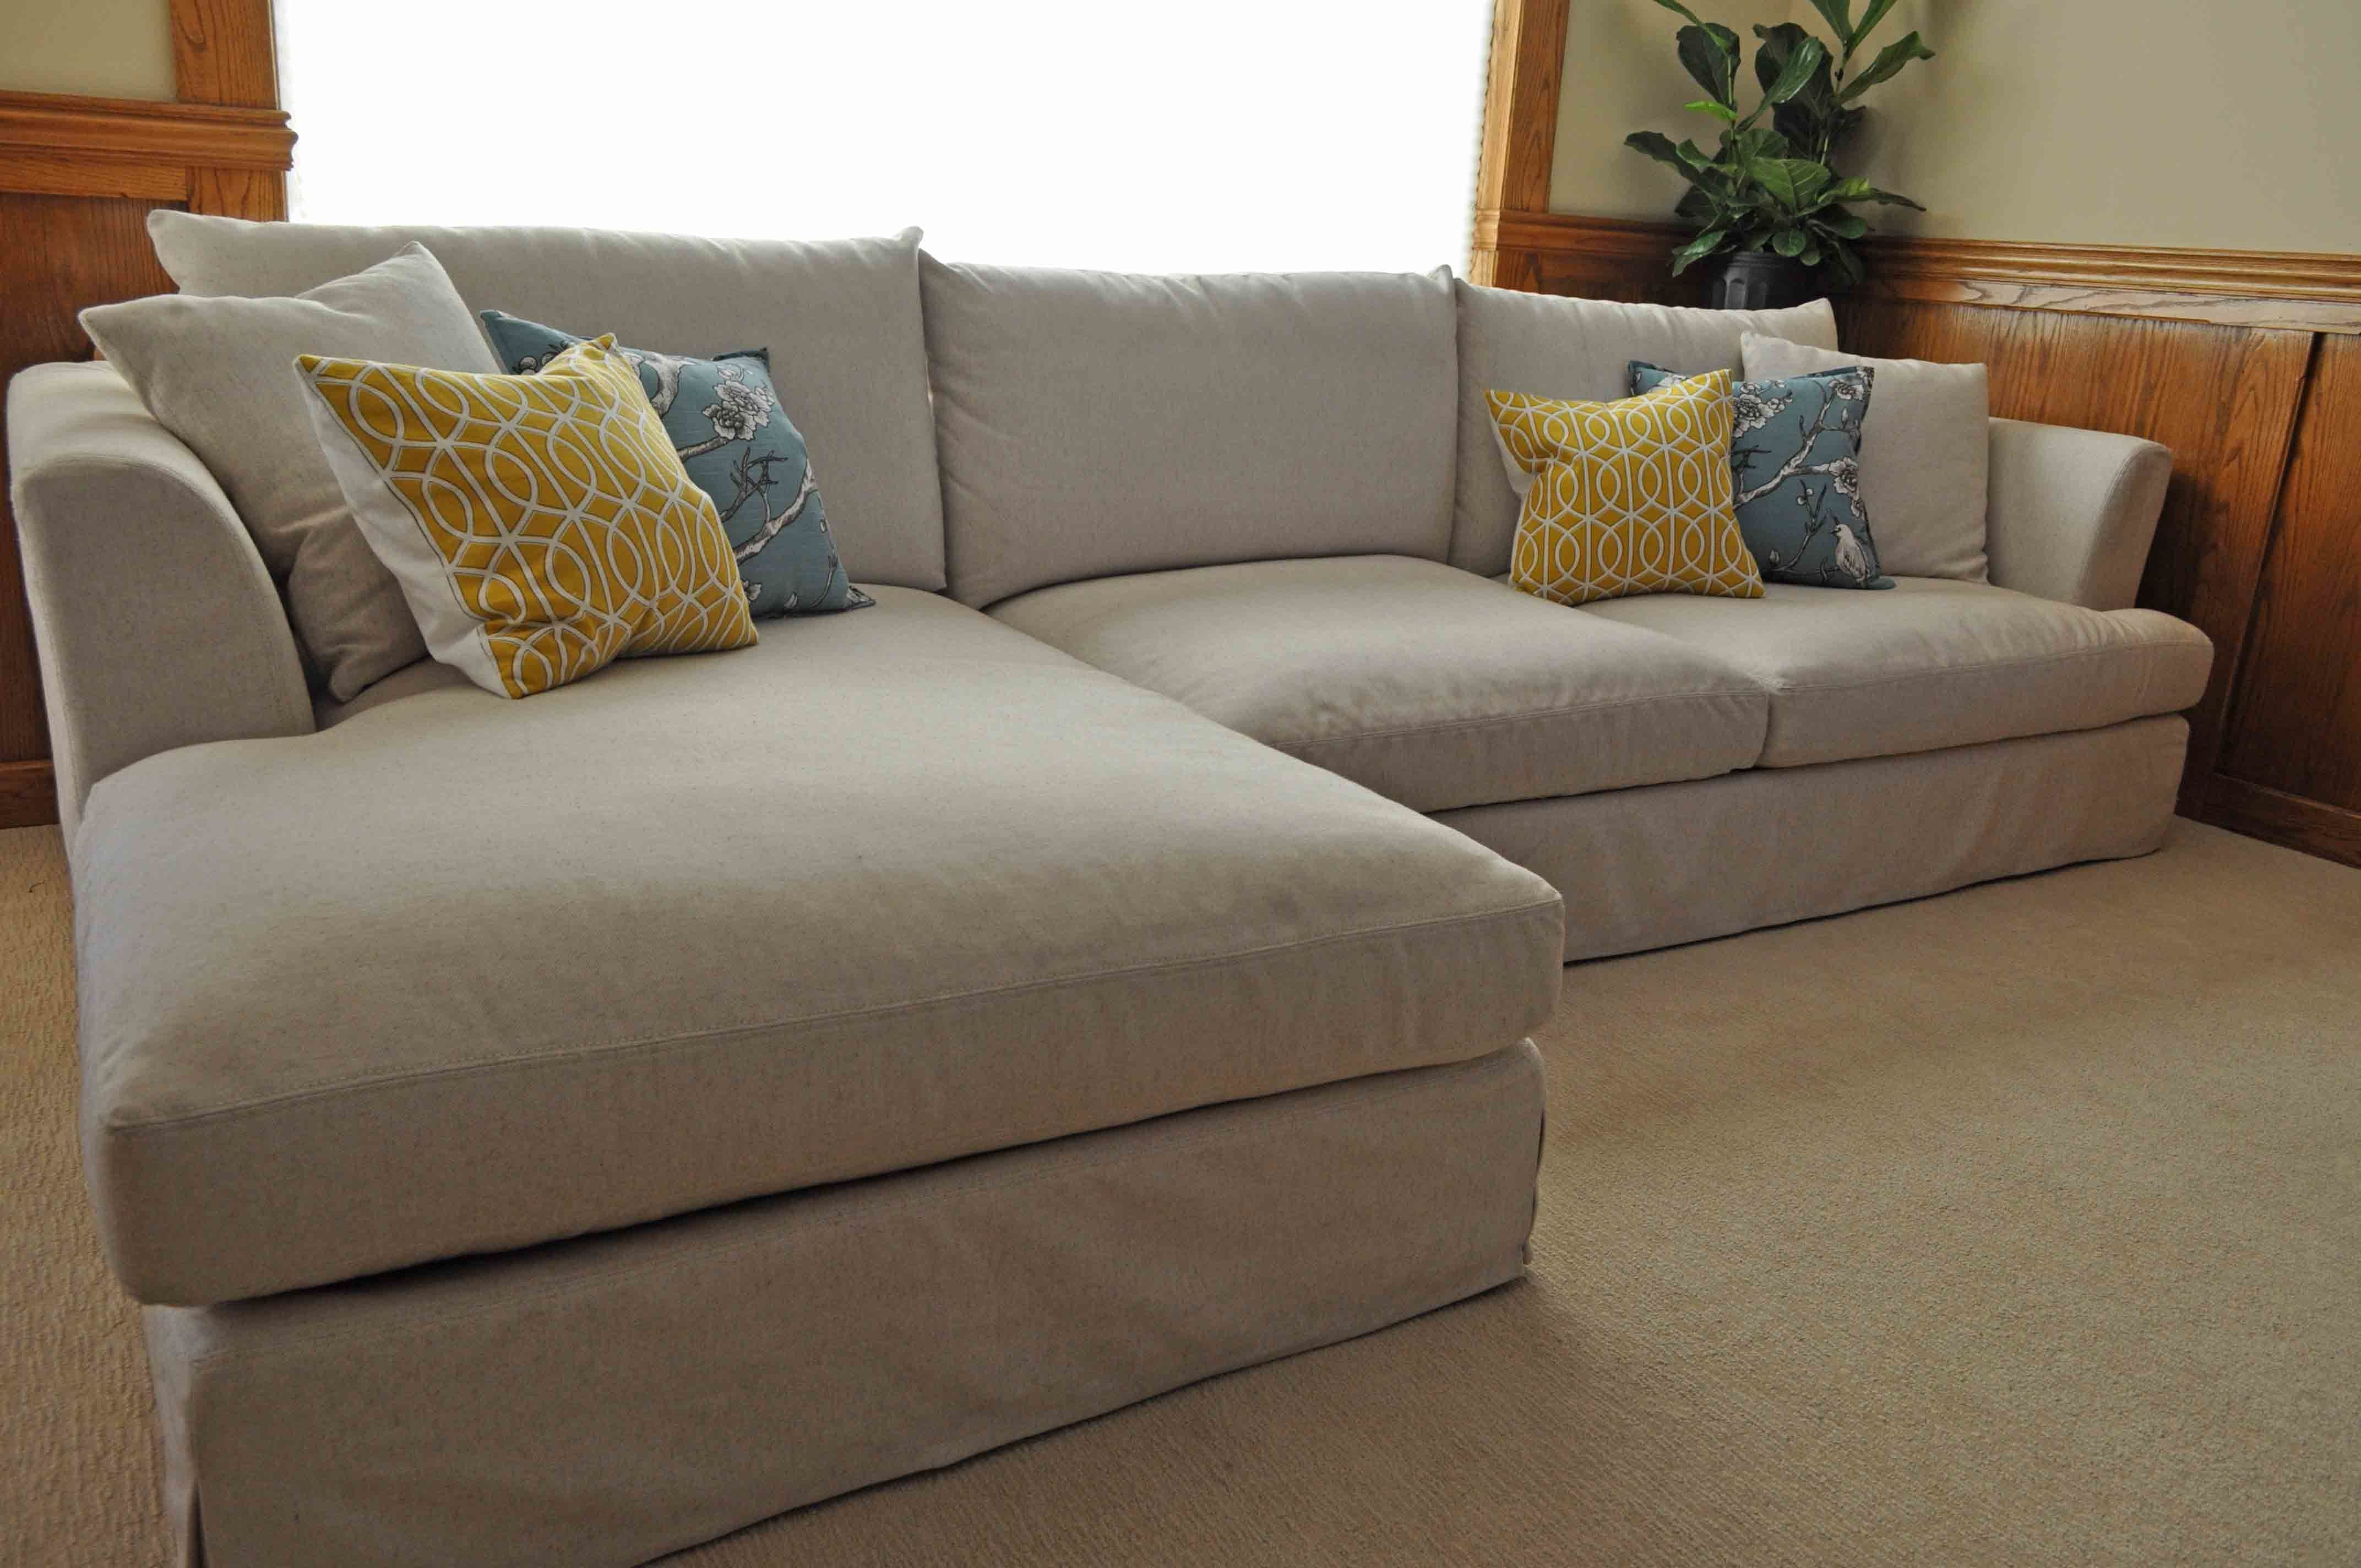 Sofa : Comfortable Sectional Sofas Most Comfortable Sofa Ashley Regarding Well Known Large Comfortable Sectional Sofas (View 11 of 15)